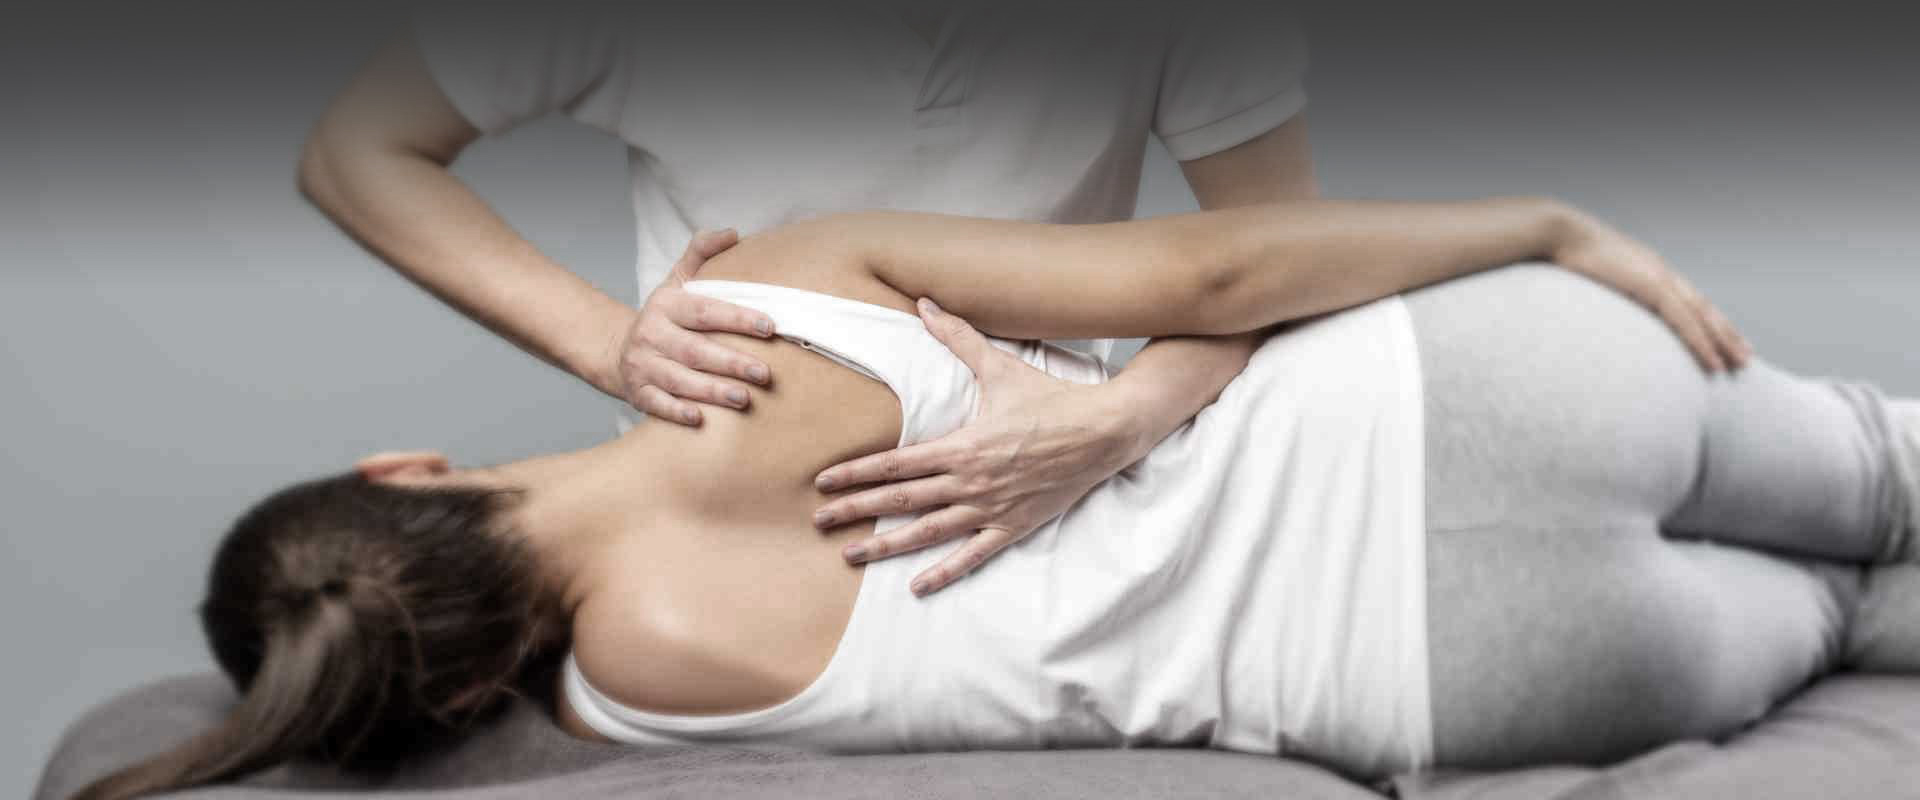 Woman therapist treating female patient for back pain using manual therapy